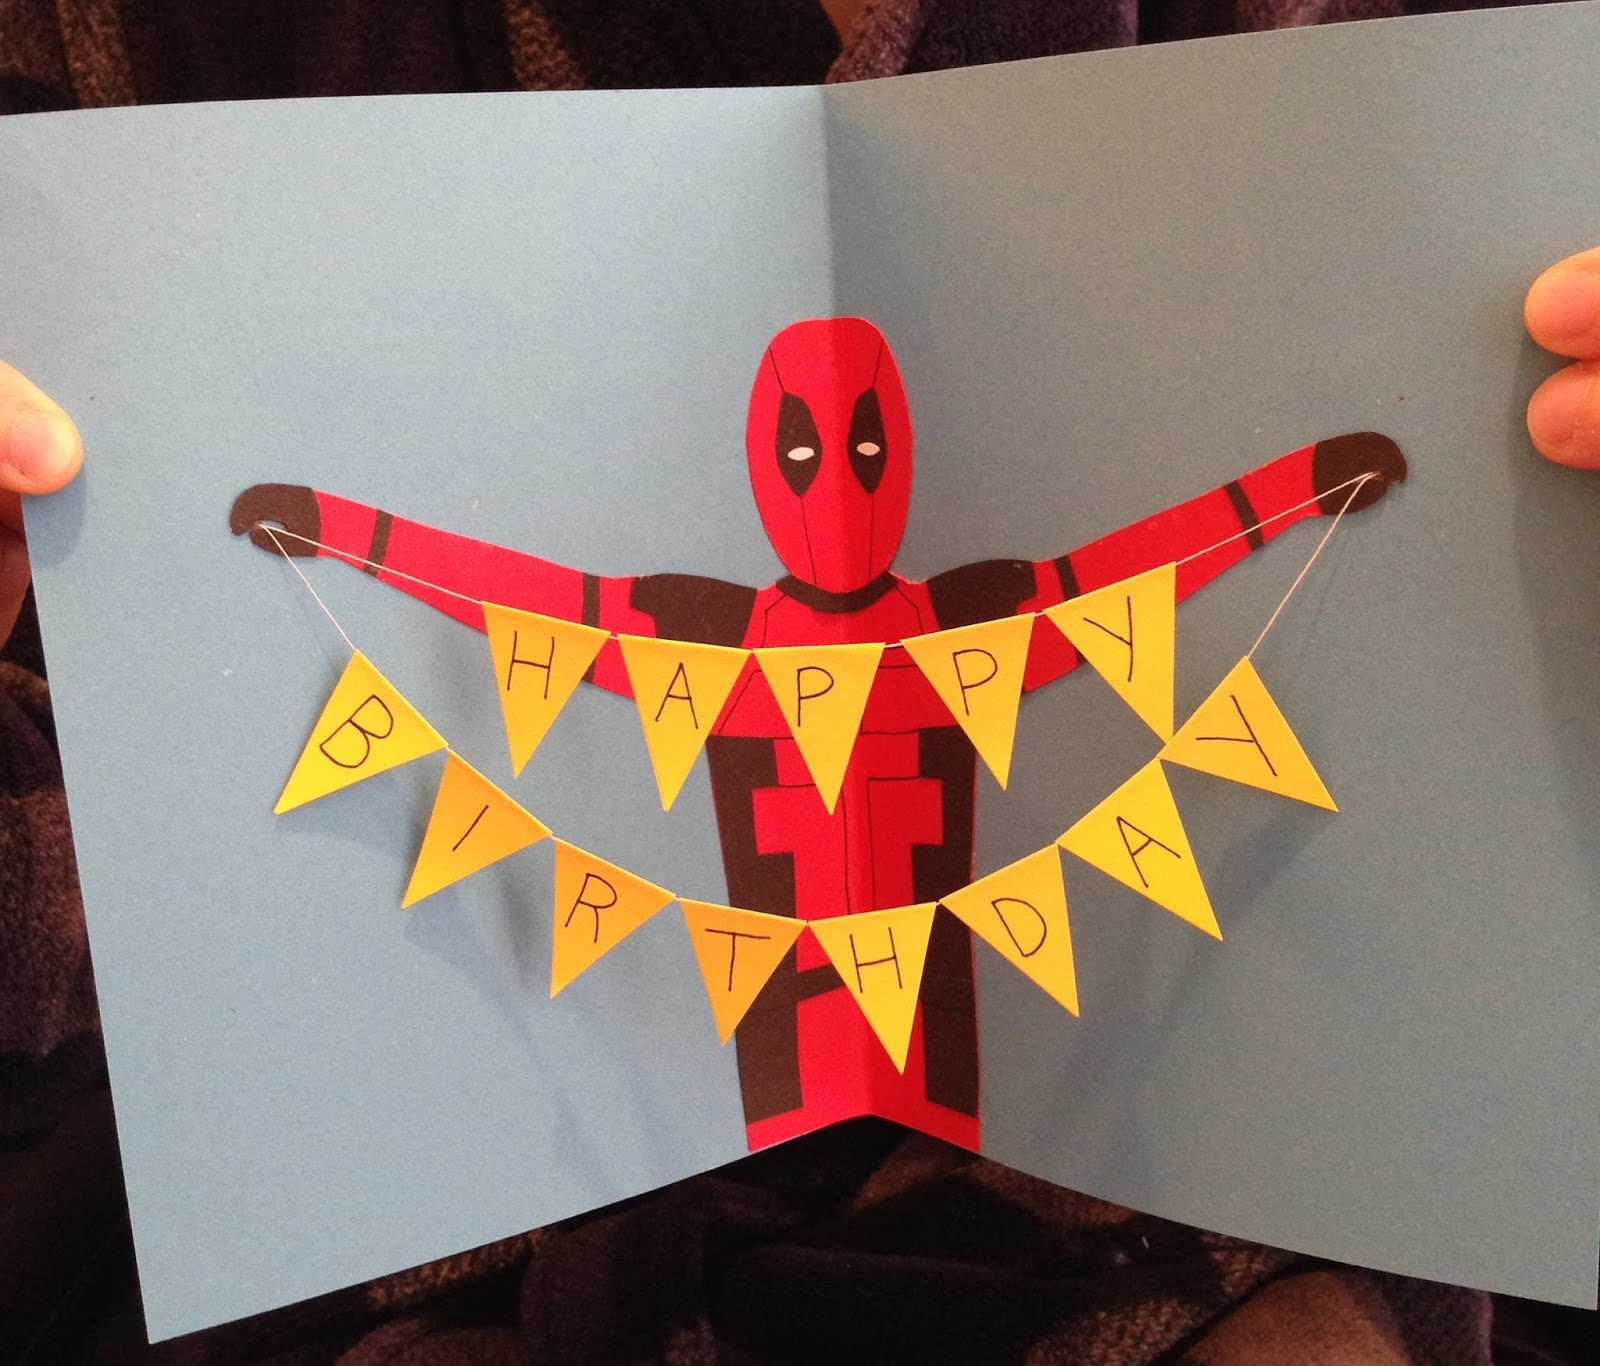 Always arty deadpool birthday card deadpool with a birthday banner id seen the idea of the banner in a card before but having deadpool holding it was a stroke of genius bookmarktalkfo Choice Image